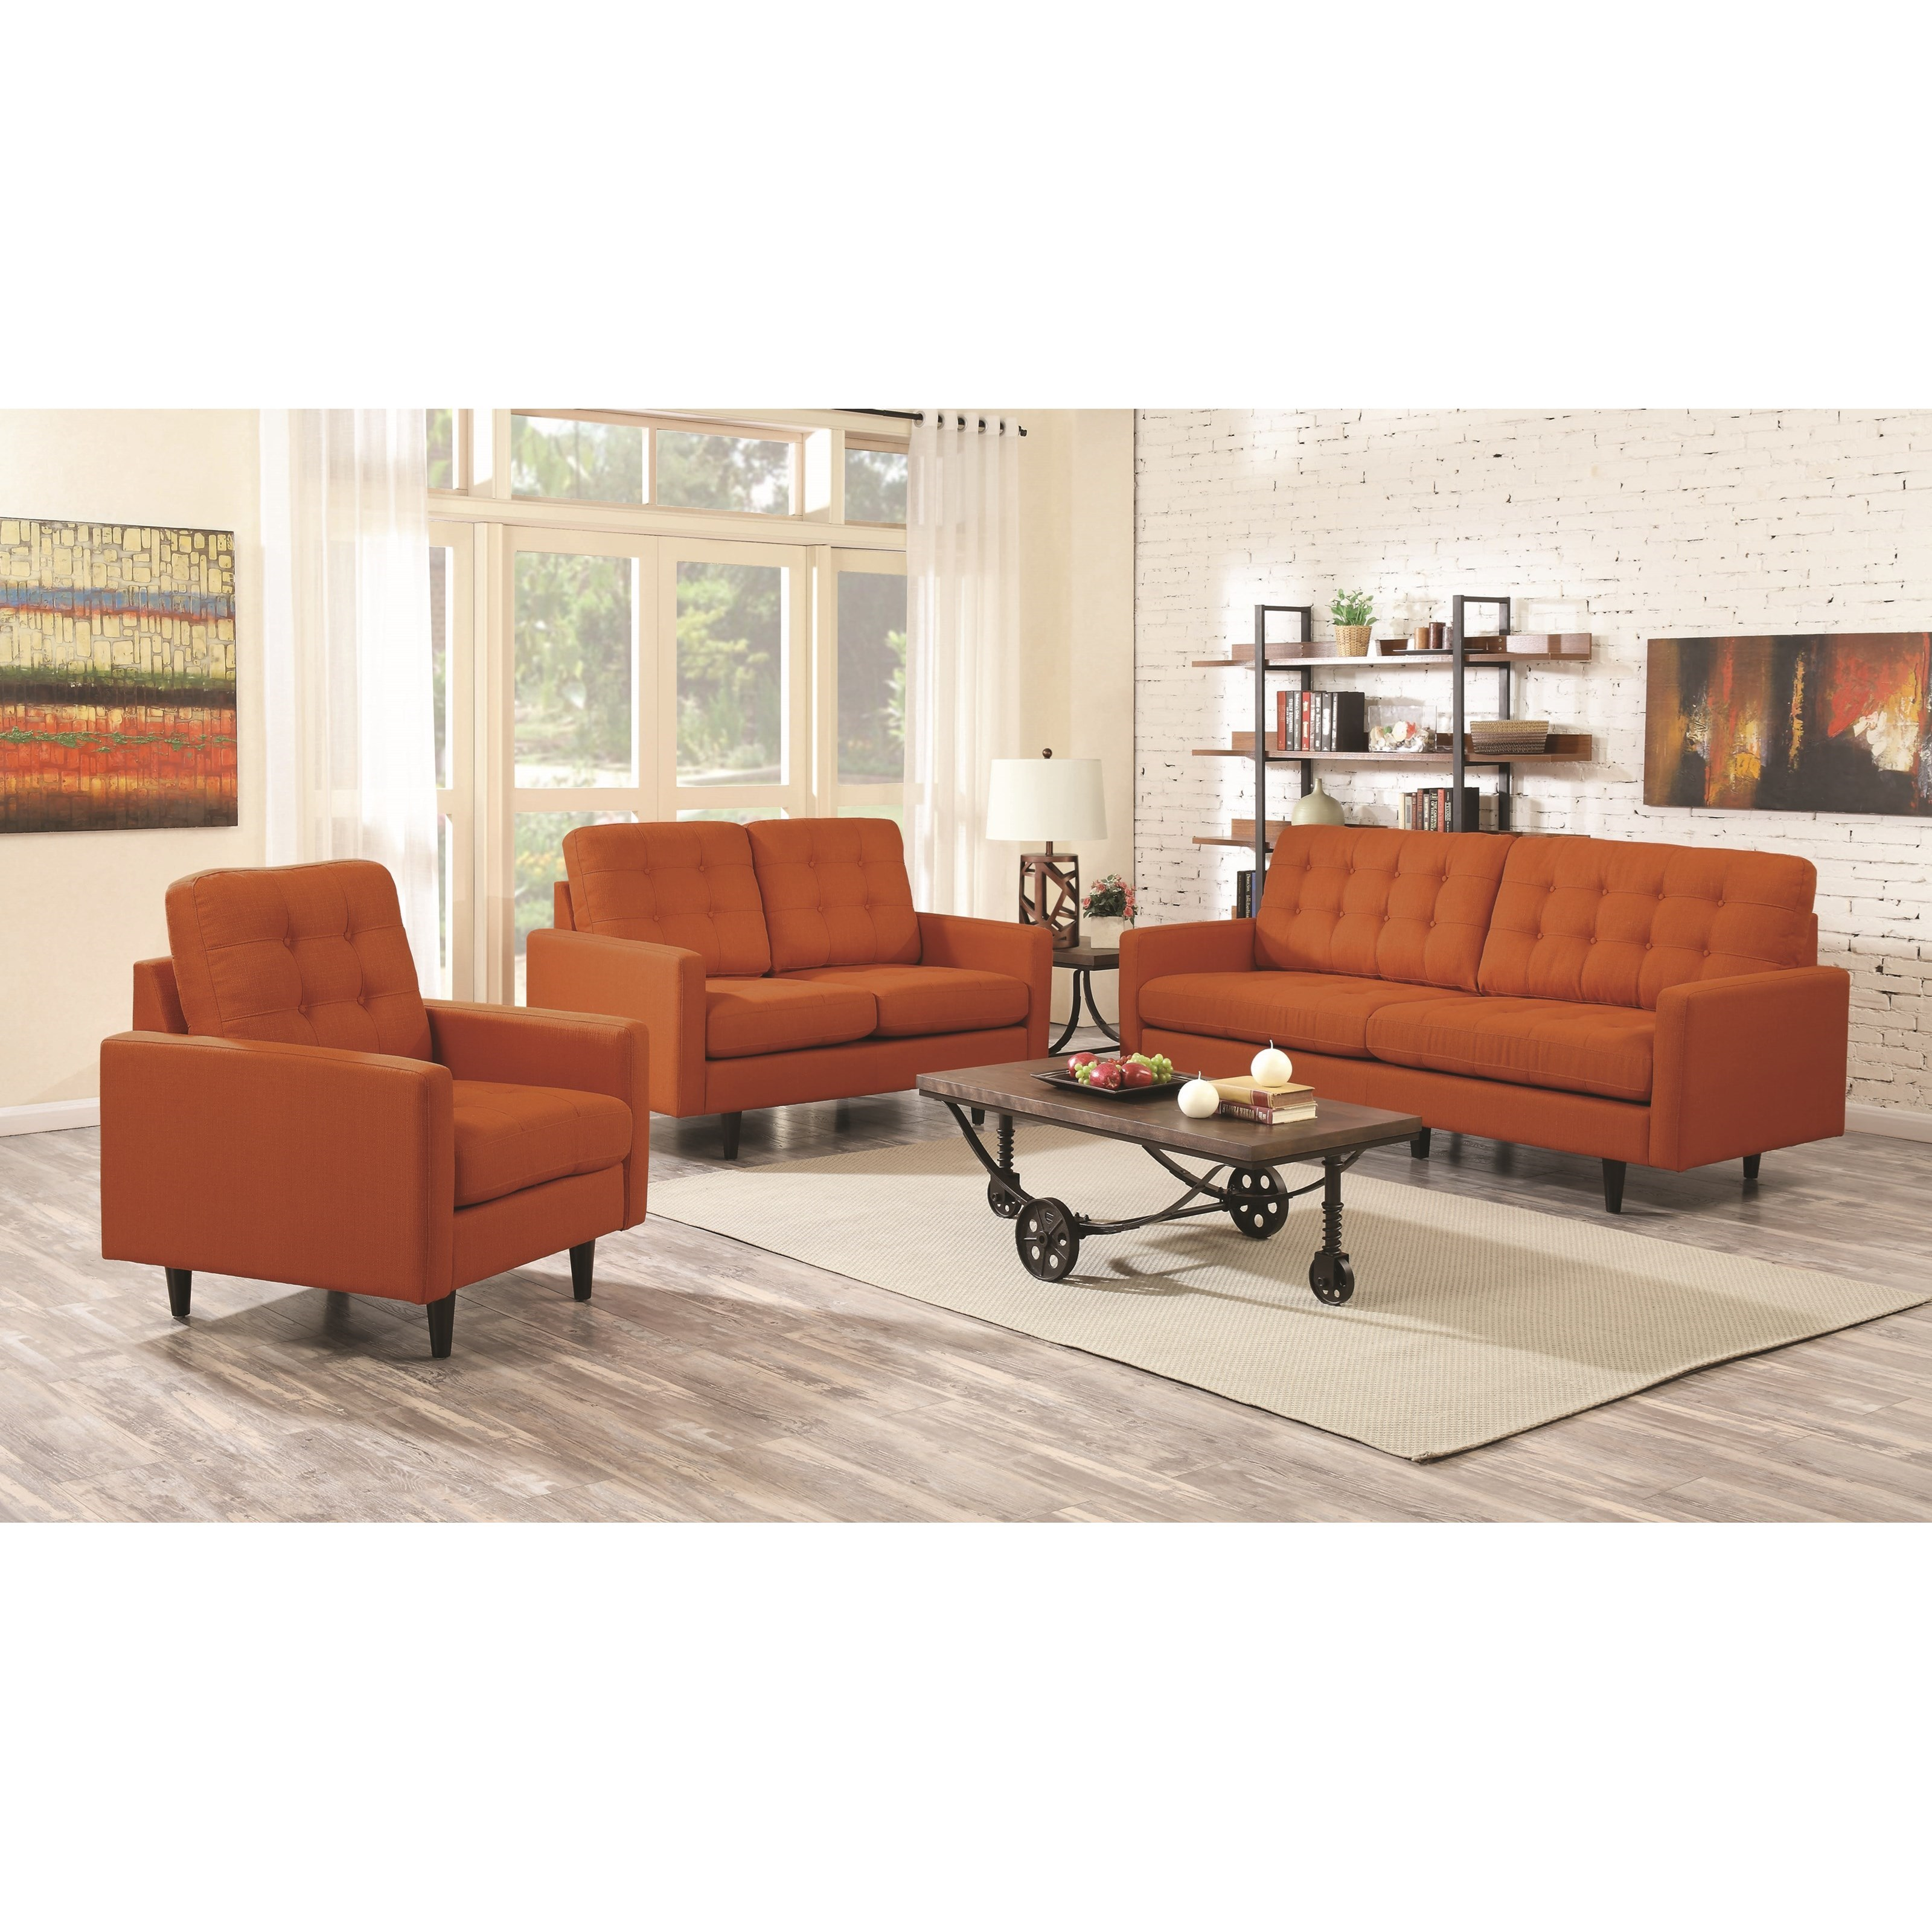 Coaster Kesson Living Room Group - Item Number: 505370 Living Room Group 1